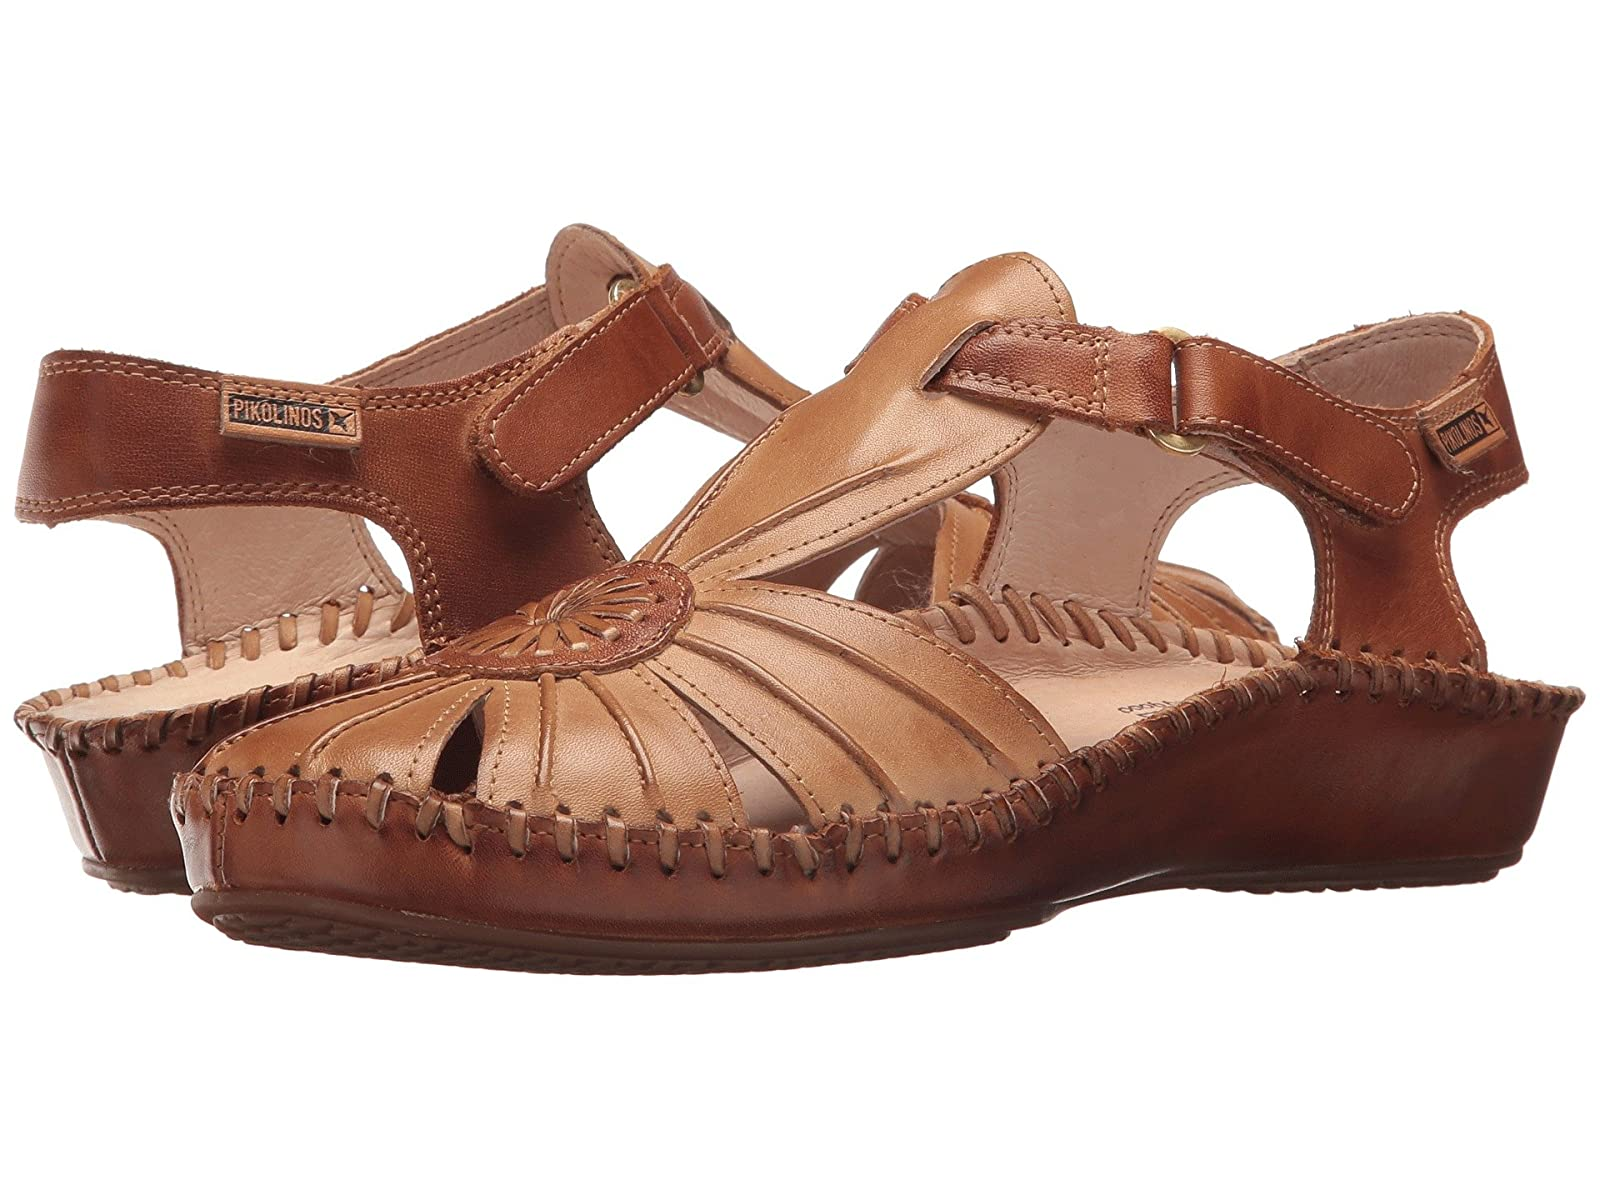 Pikolinos Puerto Vallarta 655-8899C1Atmospheric grades have affordable shoes